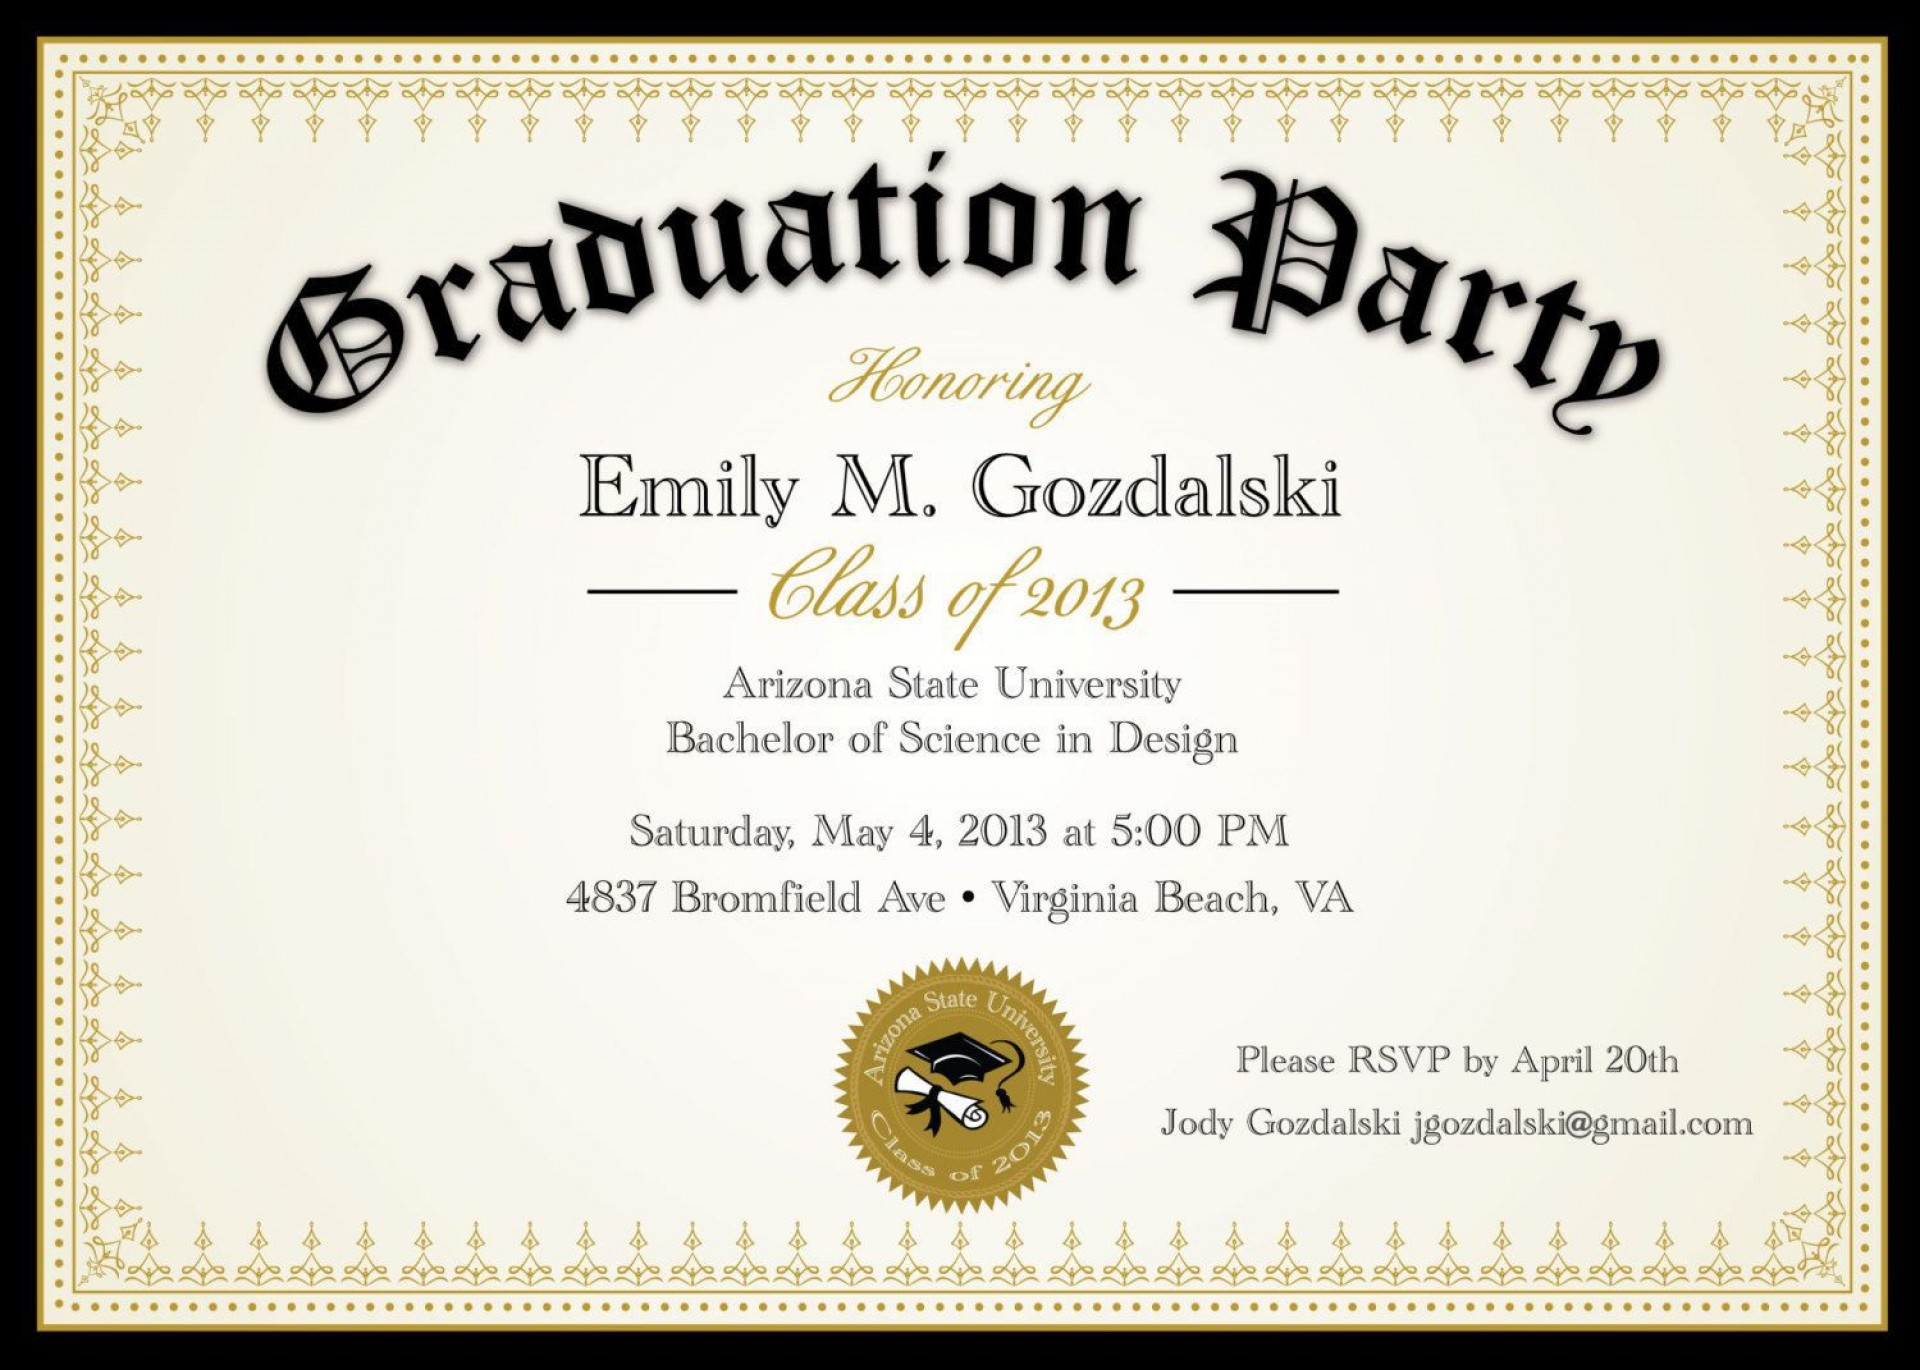 004 Awful College Graduation Party Invitation Template Highest Quality  Templates1920